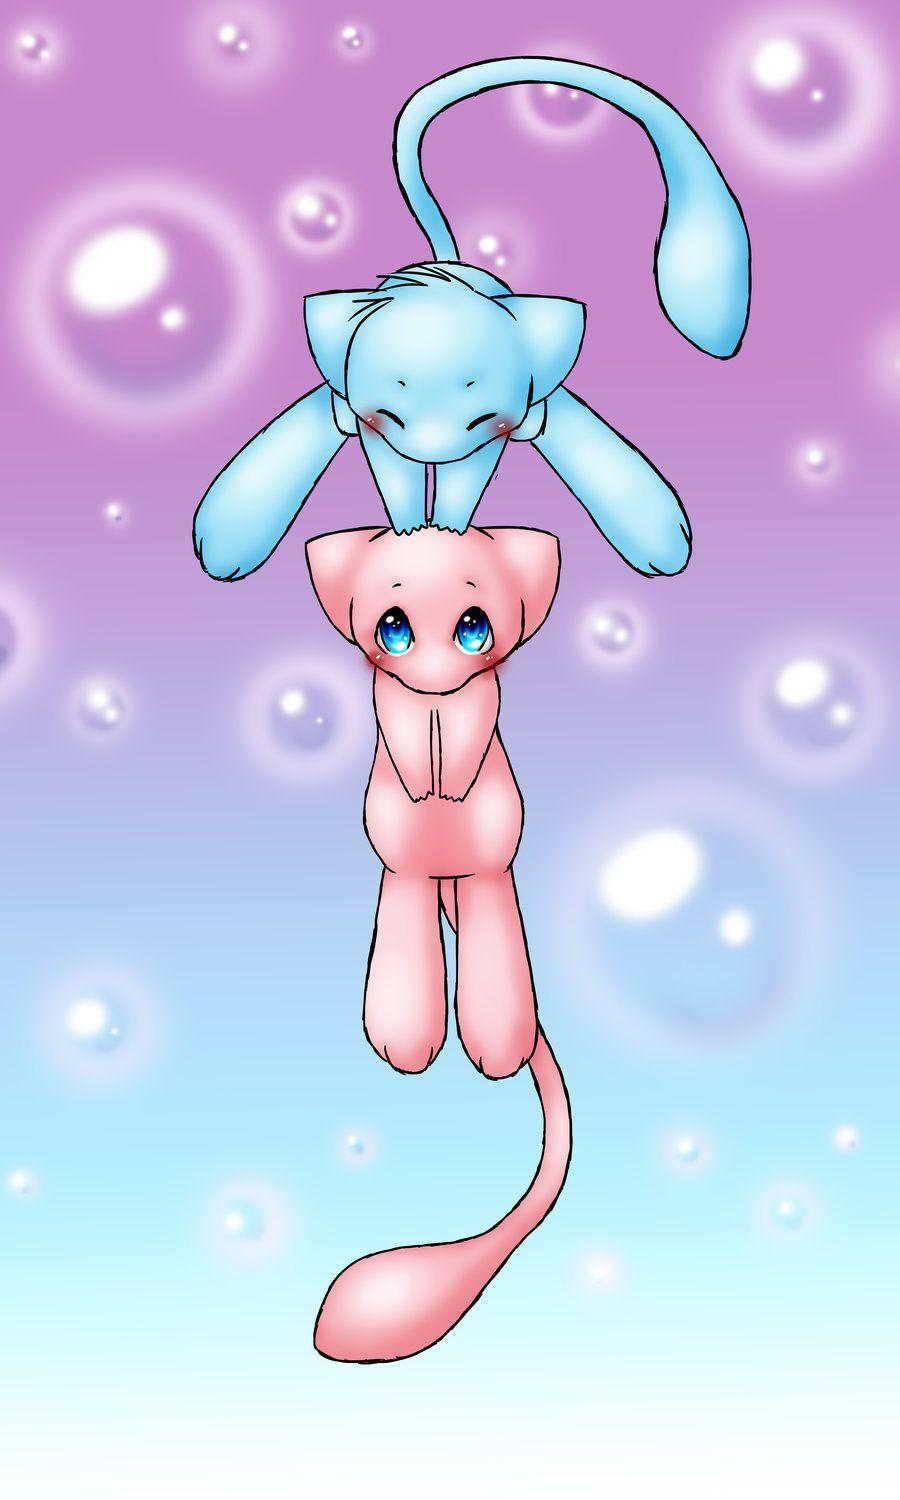 Mew (pokemon) images Mew Love! HD wallpaper and background photos ...